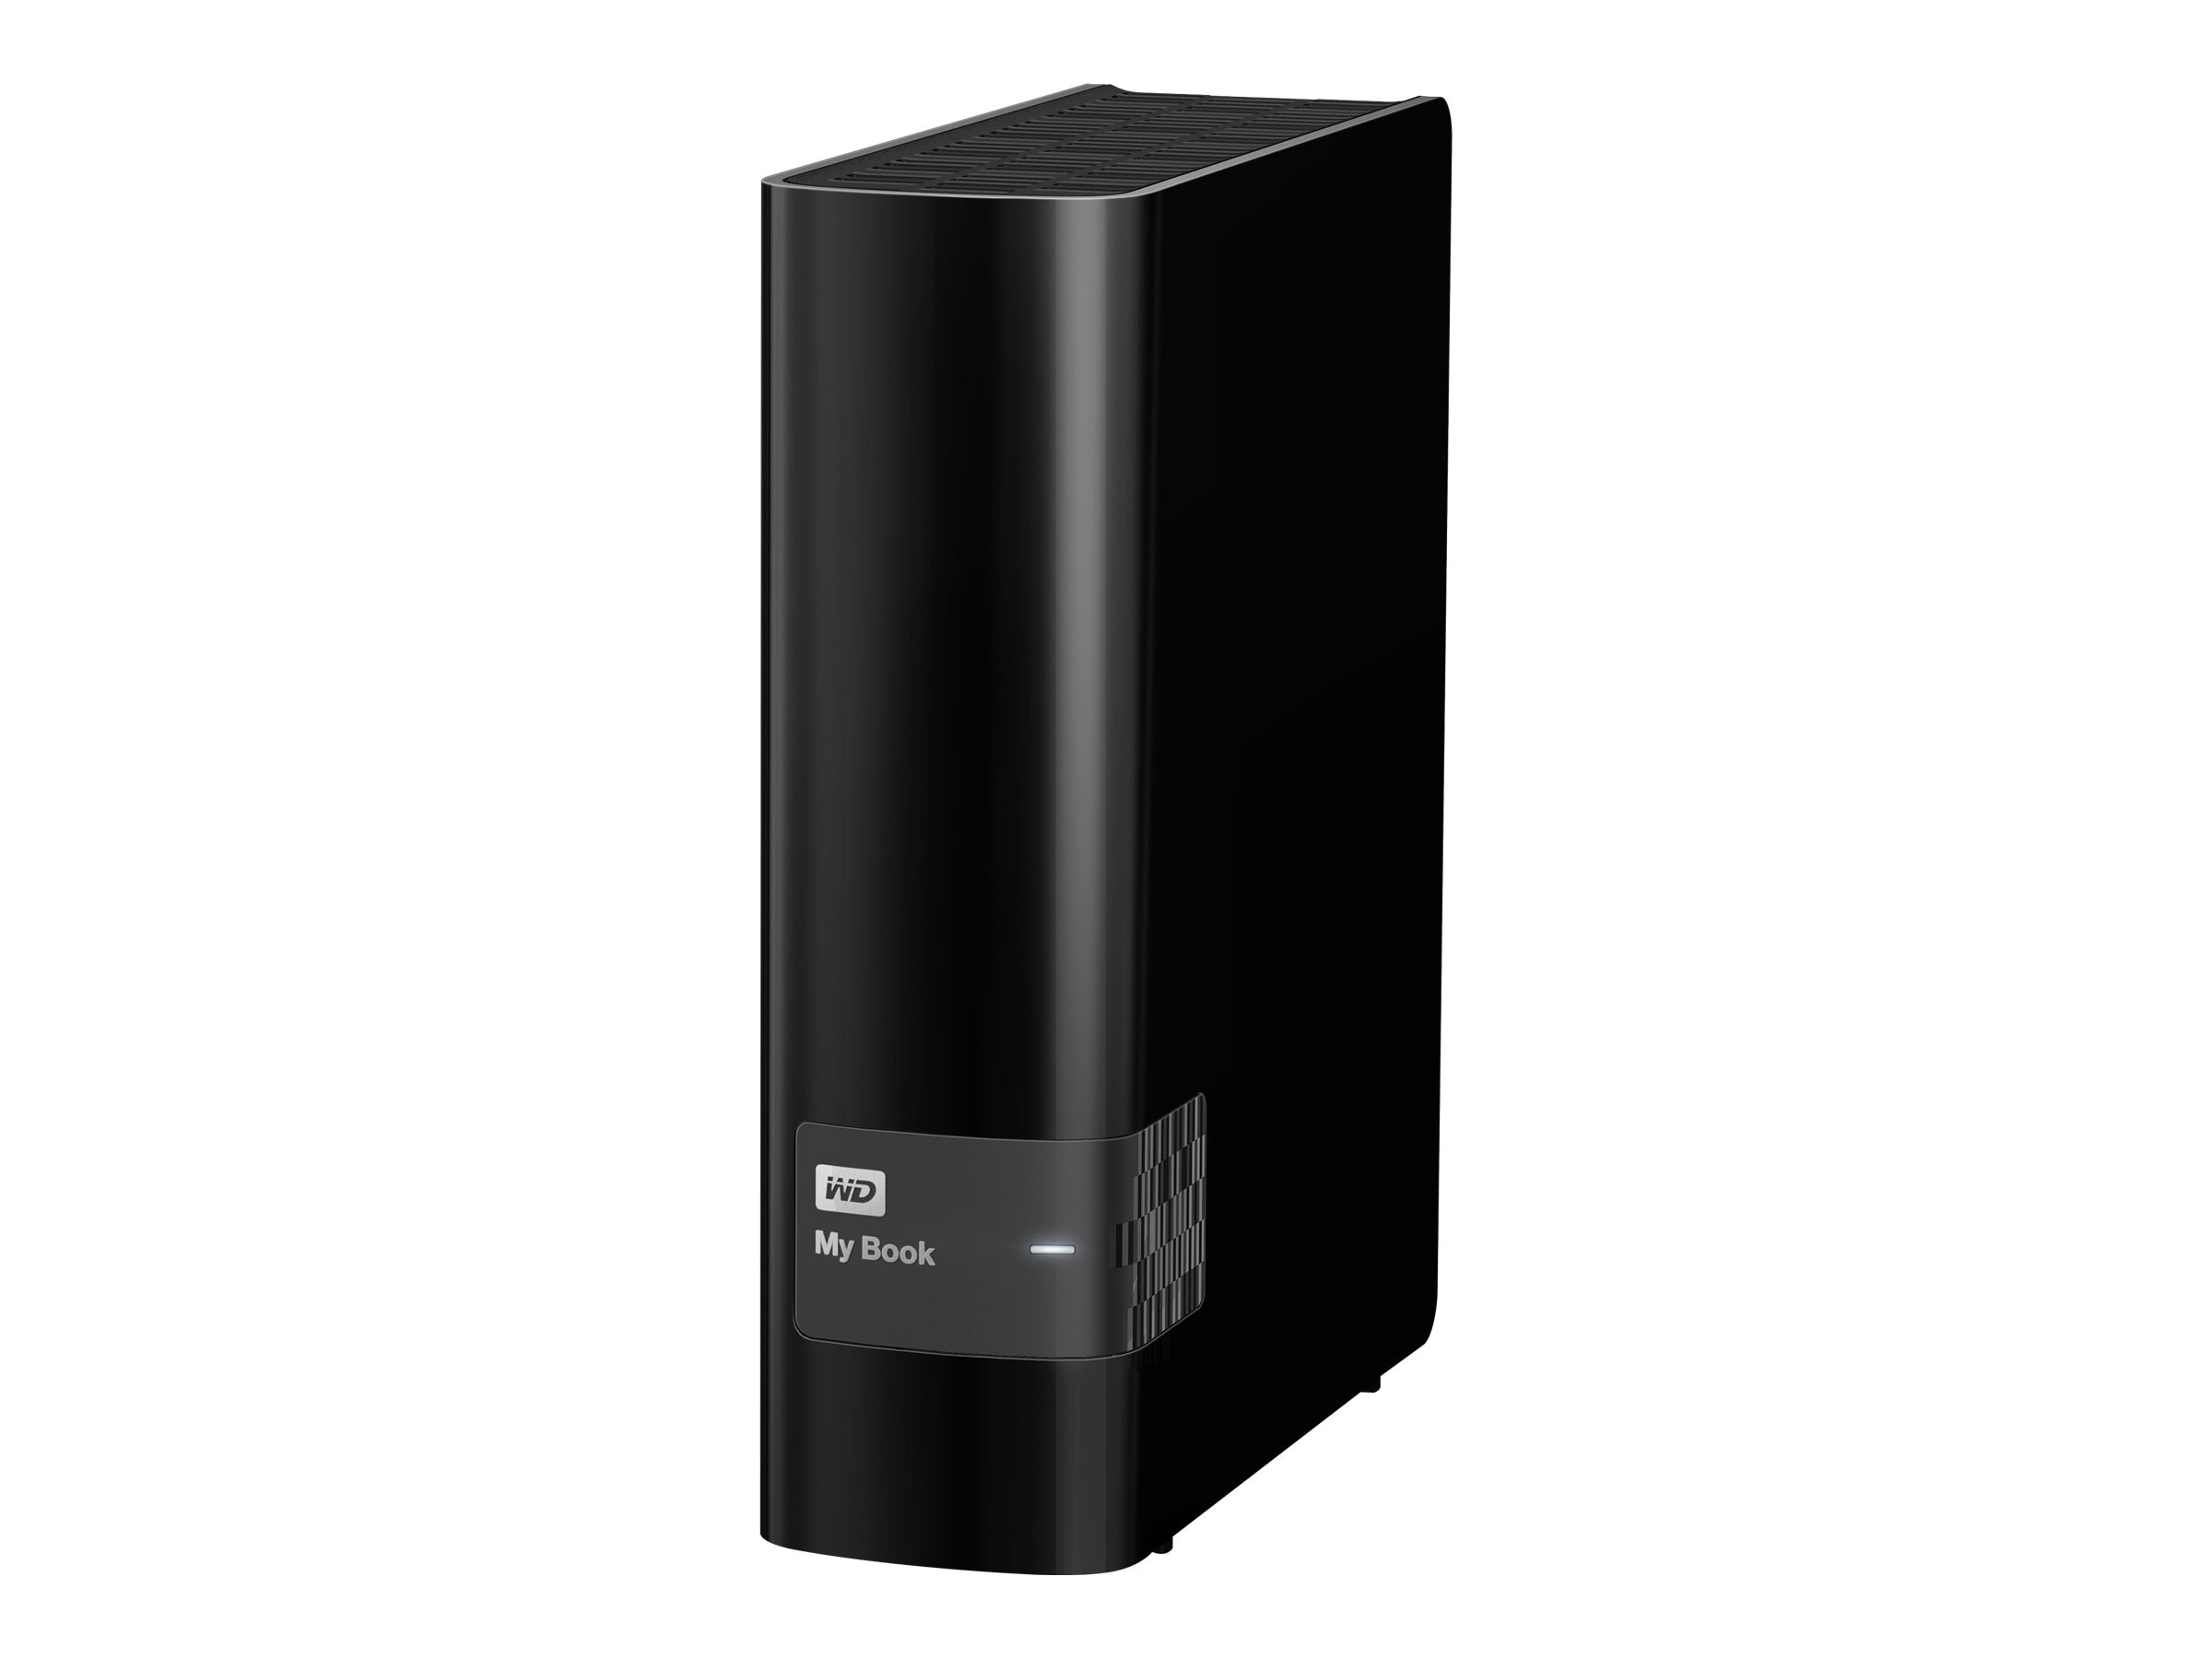 WD 8TB My Book Desktop Hard Drive, WDBFJK0080HBK-NESN, 31607921, Hard Drives - External